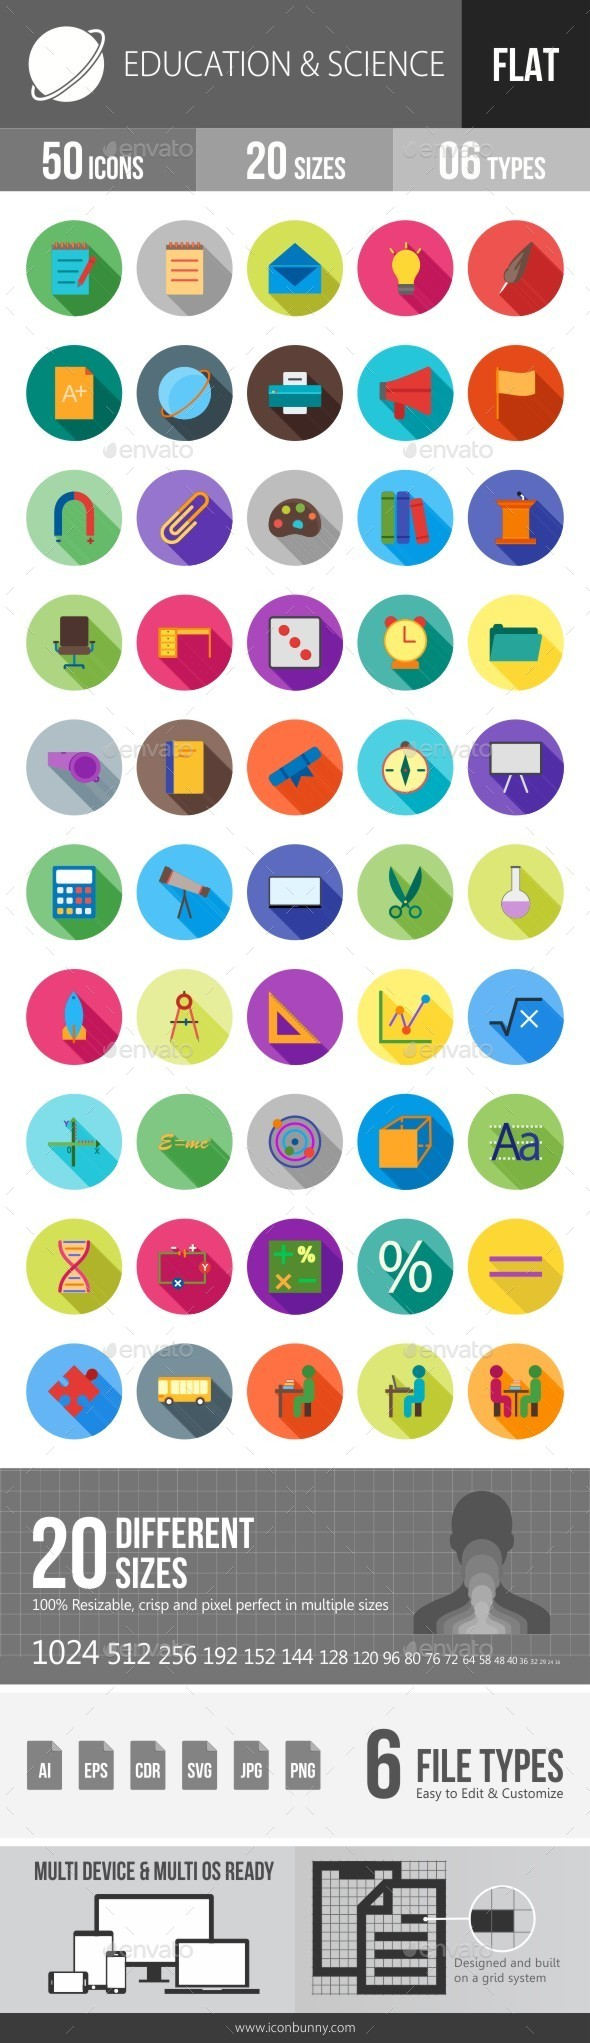 Education & Science Flat Shadowed Icons - Icons